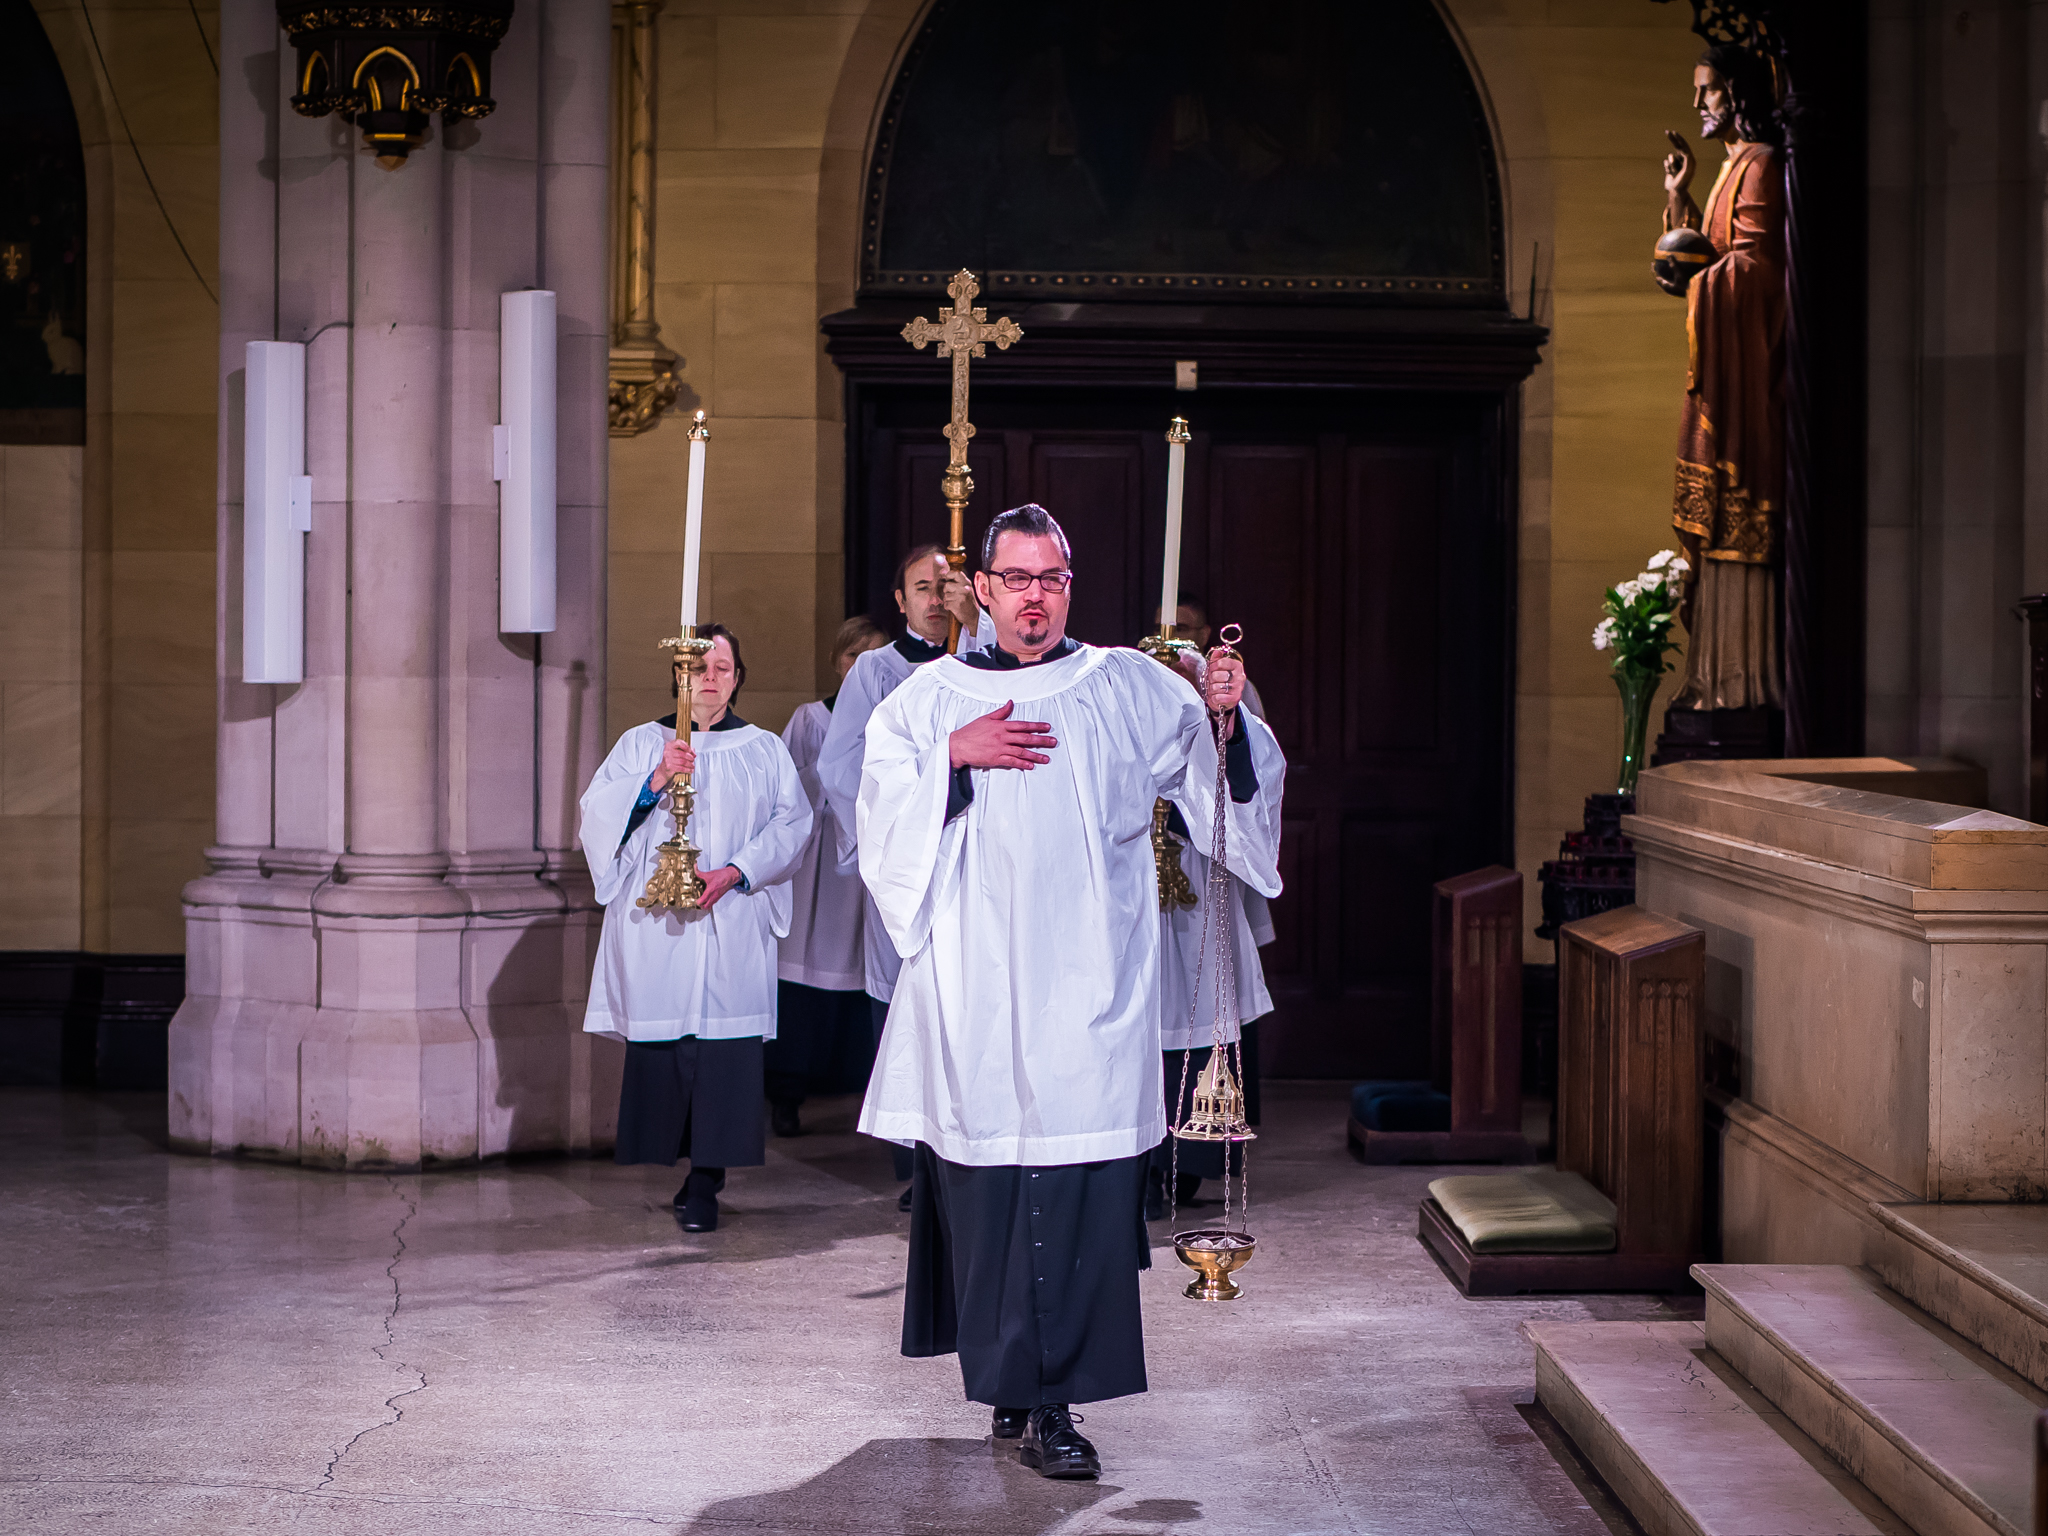 """The servers and clergy enter. The choir sings the traditional introit for this Sunday, """"Be joyful in God, all you lands, alleluia.""""  Photo by Ricardo Gomez"""